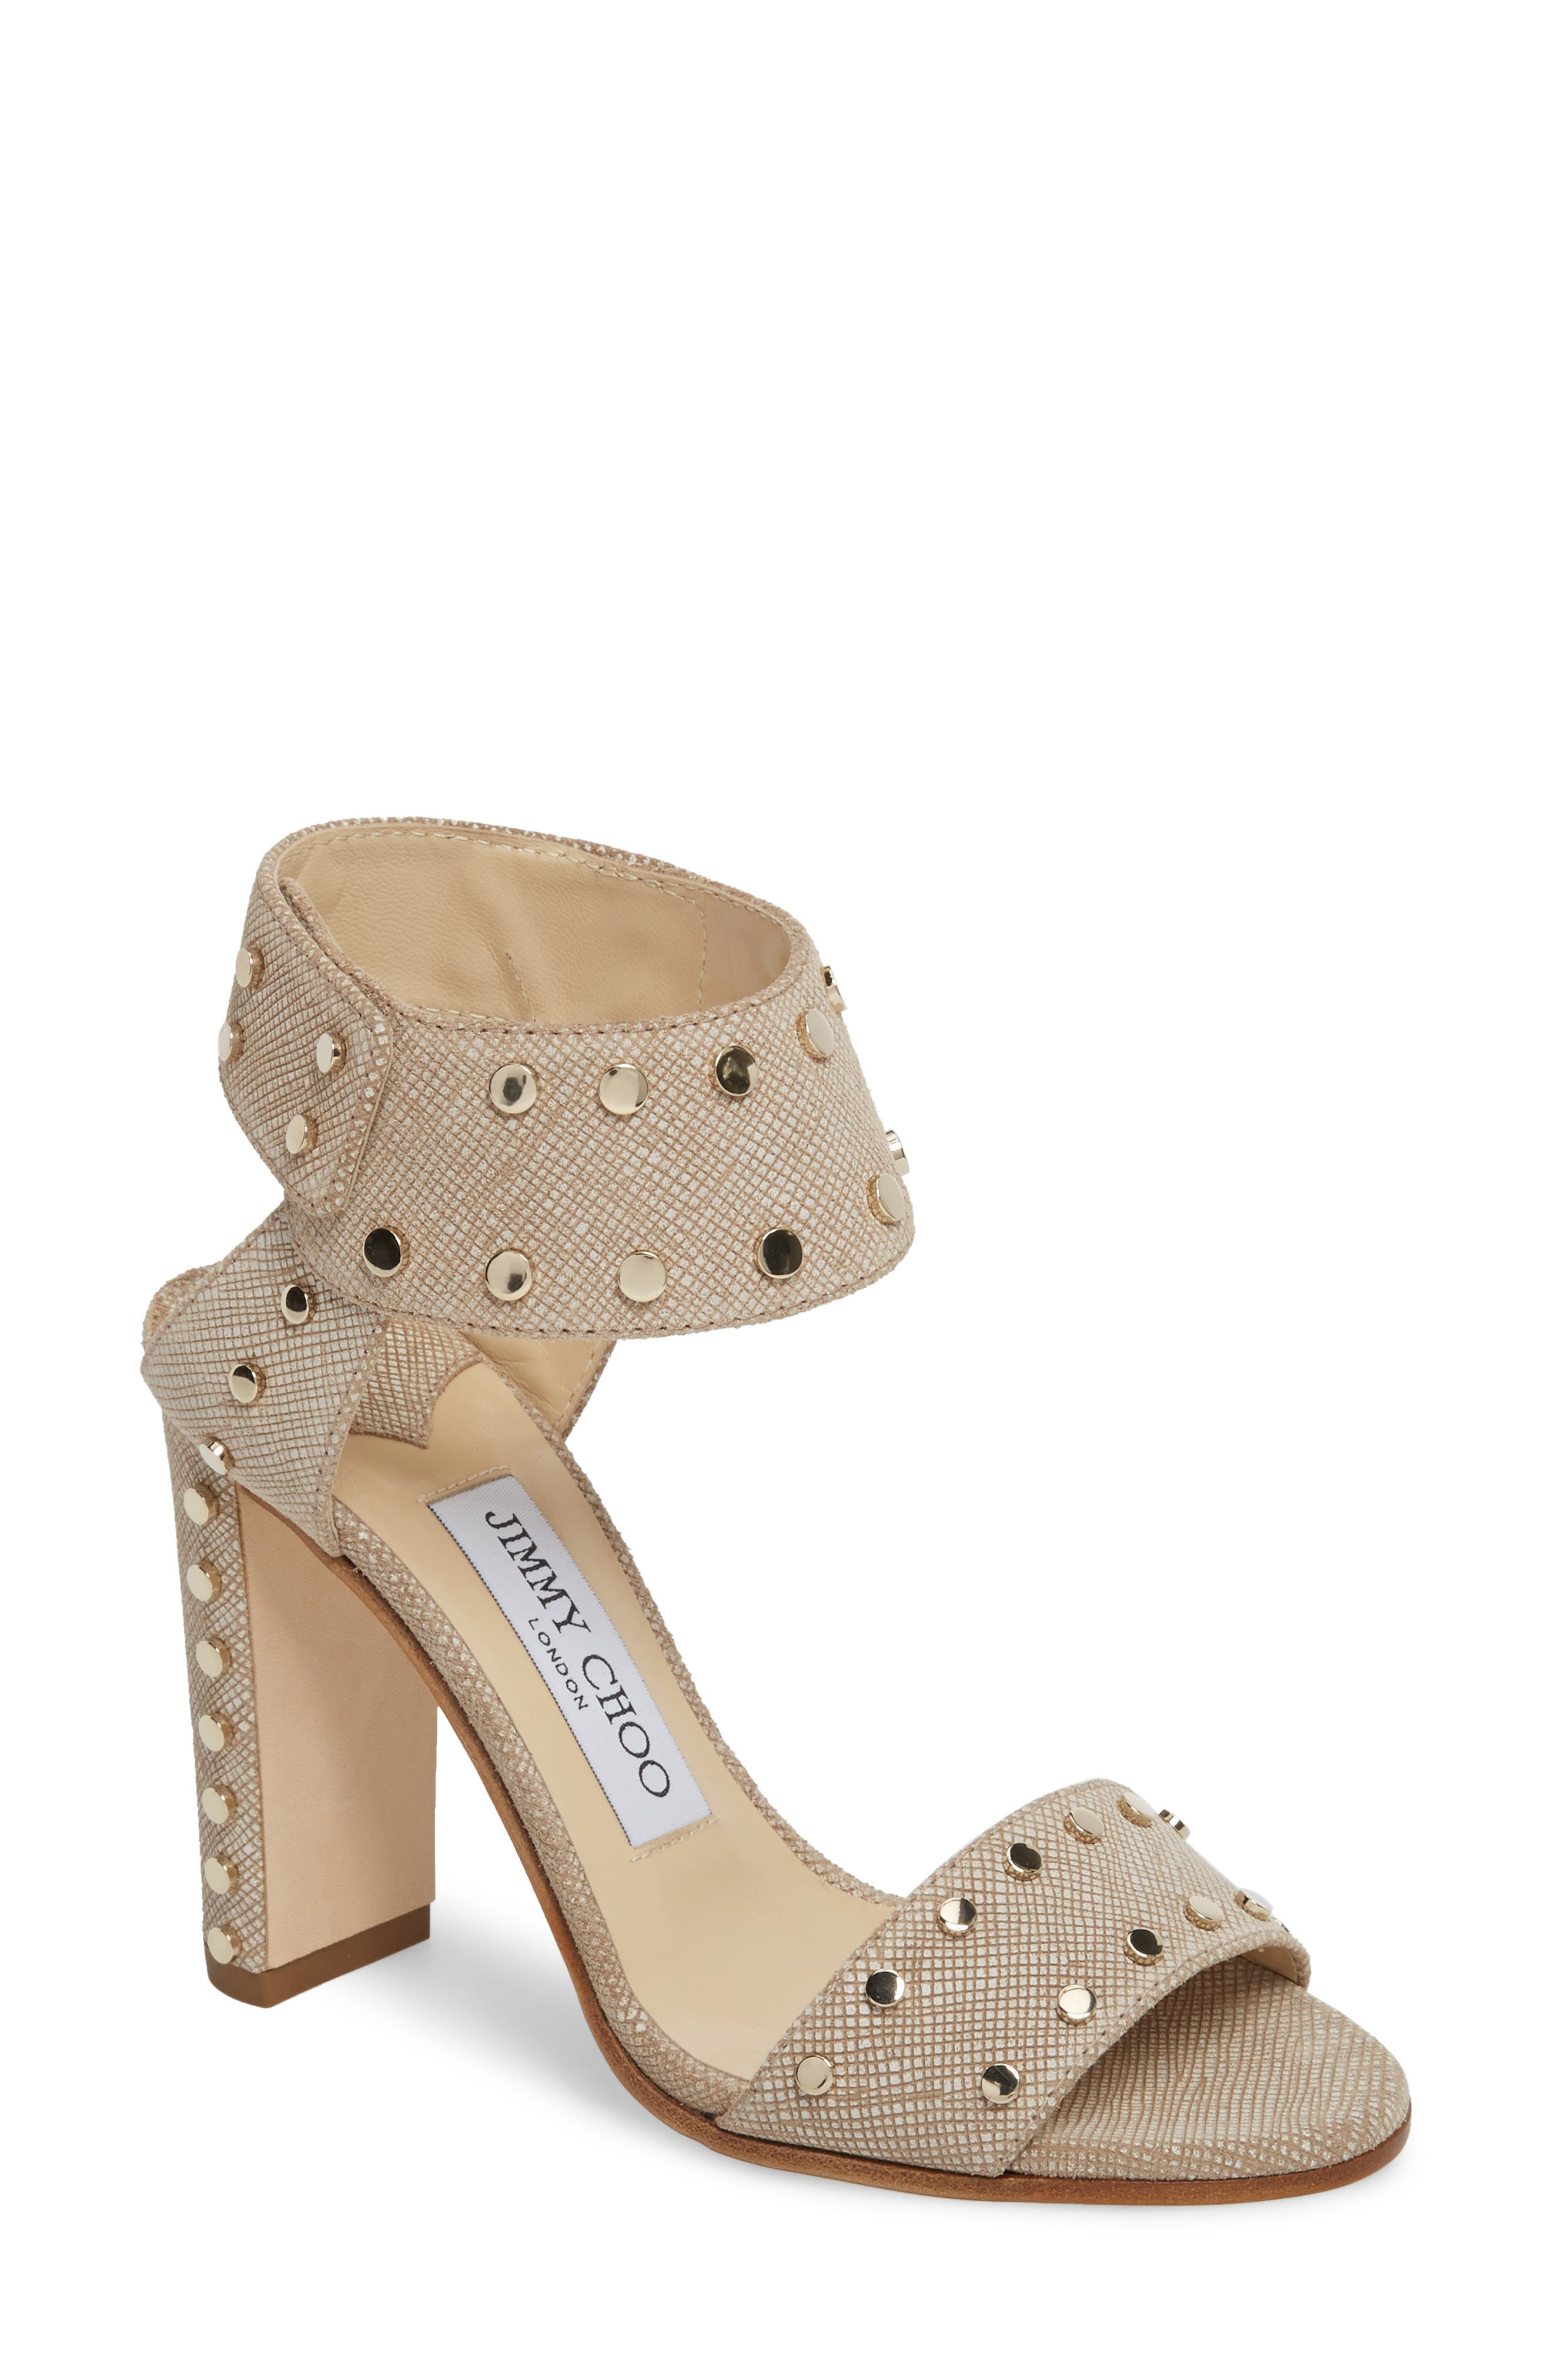 Veto Studded Ankle Cuff Sandal,                             Main thumbnail 1, color,                             270